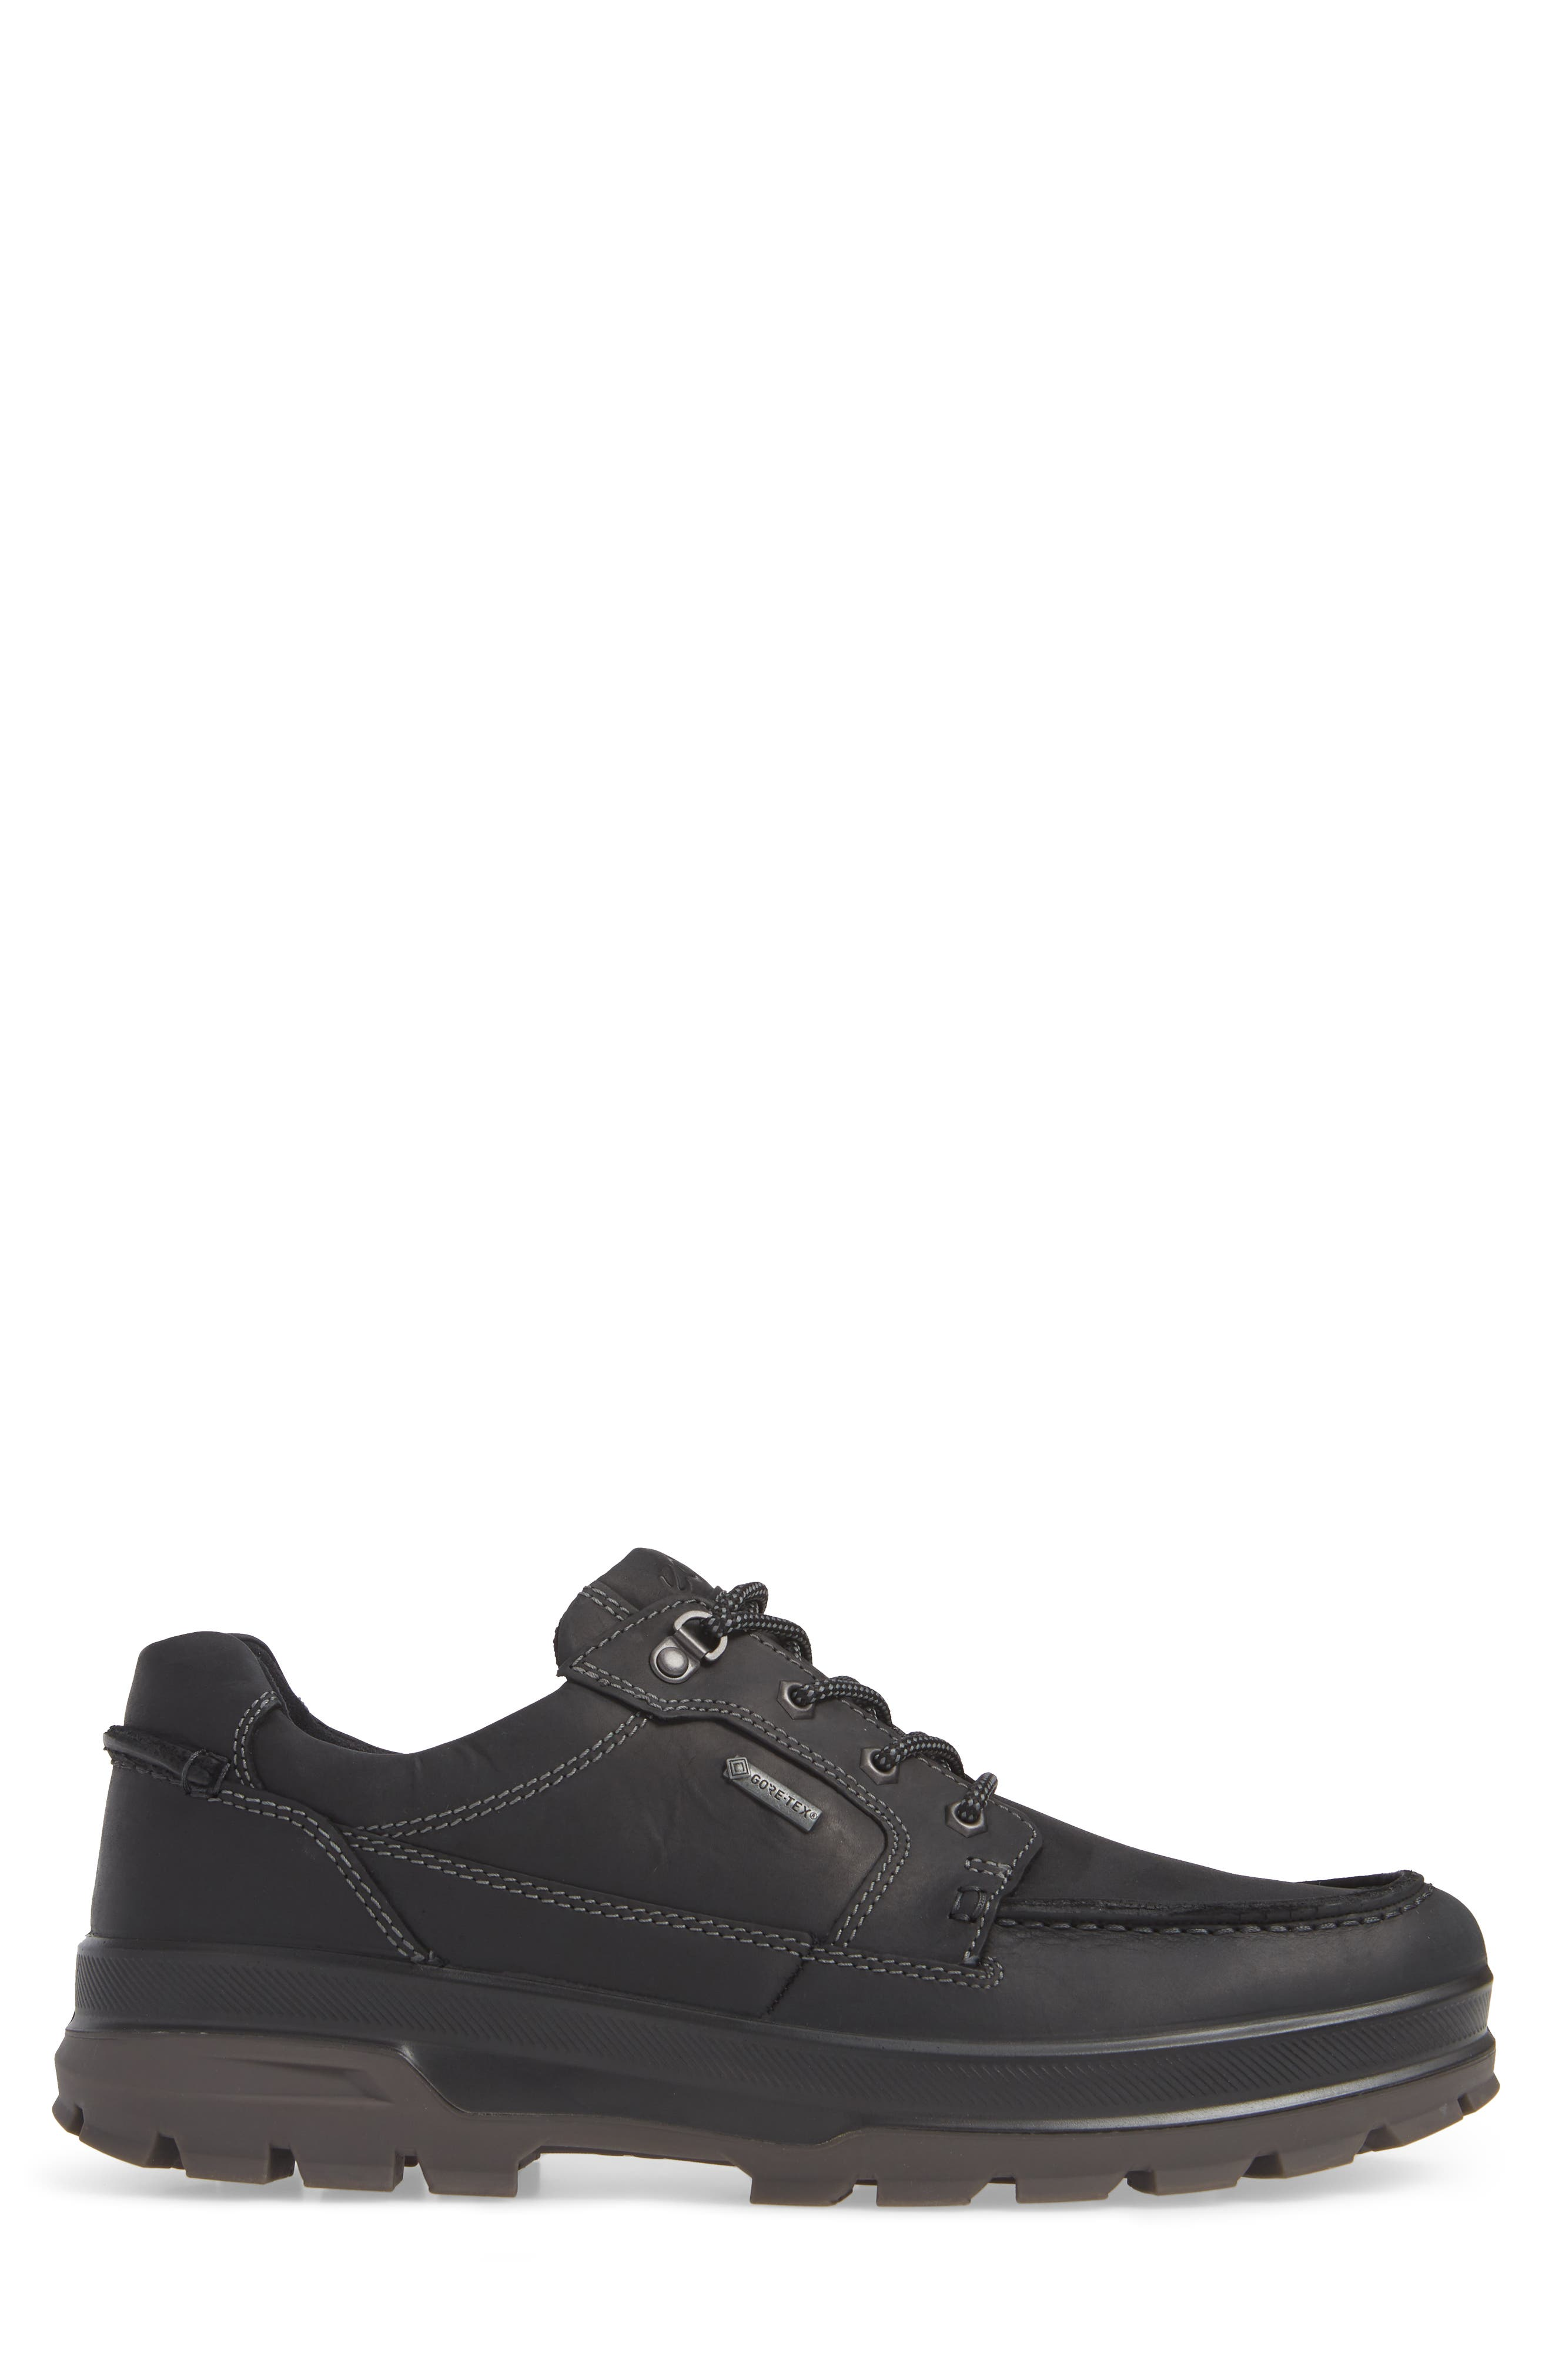 ECCO, Rugged Track Low Gore-Tex<sup>®</sup> Oxford, Alternate thumbnail 3, color, 003